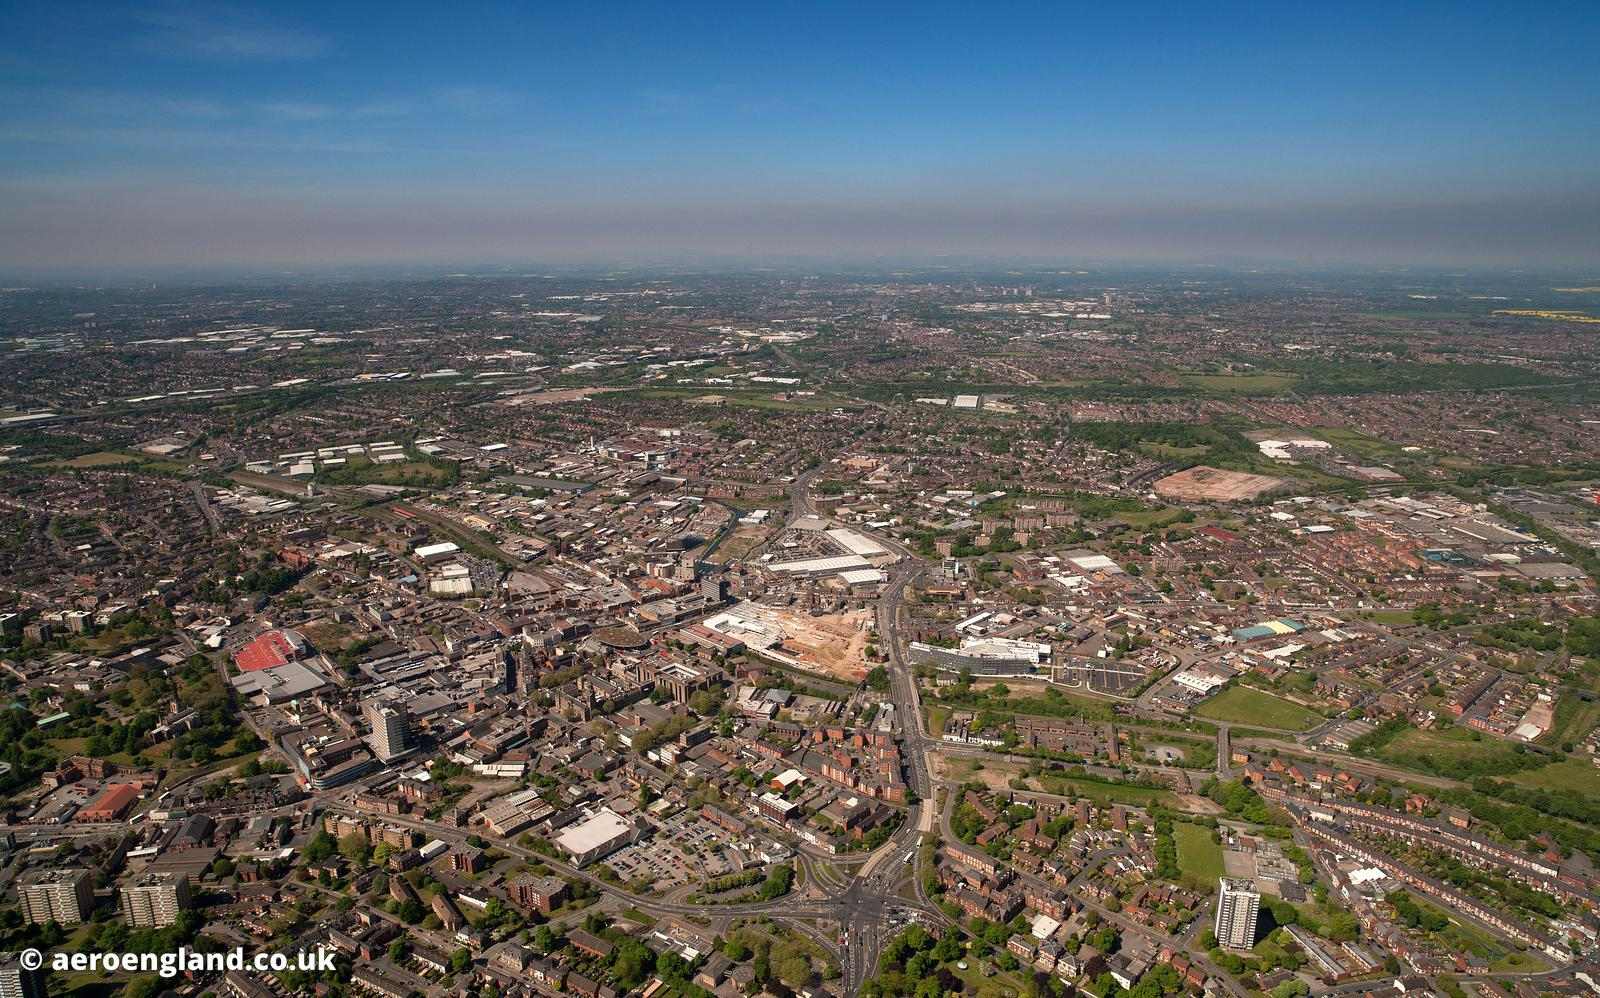 Walsall aerial photograph